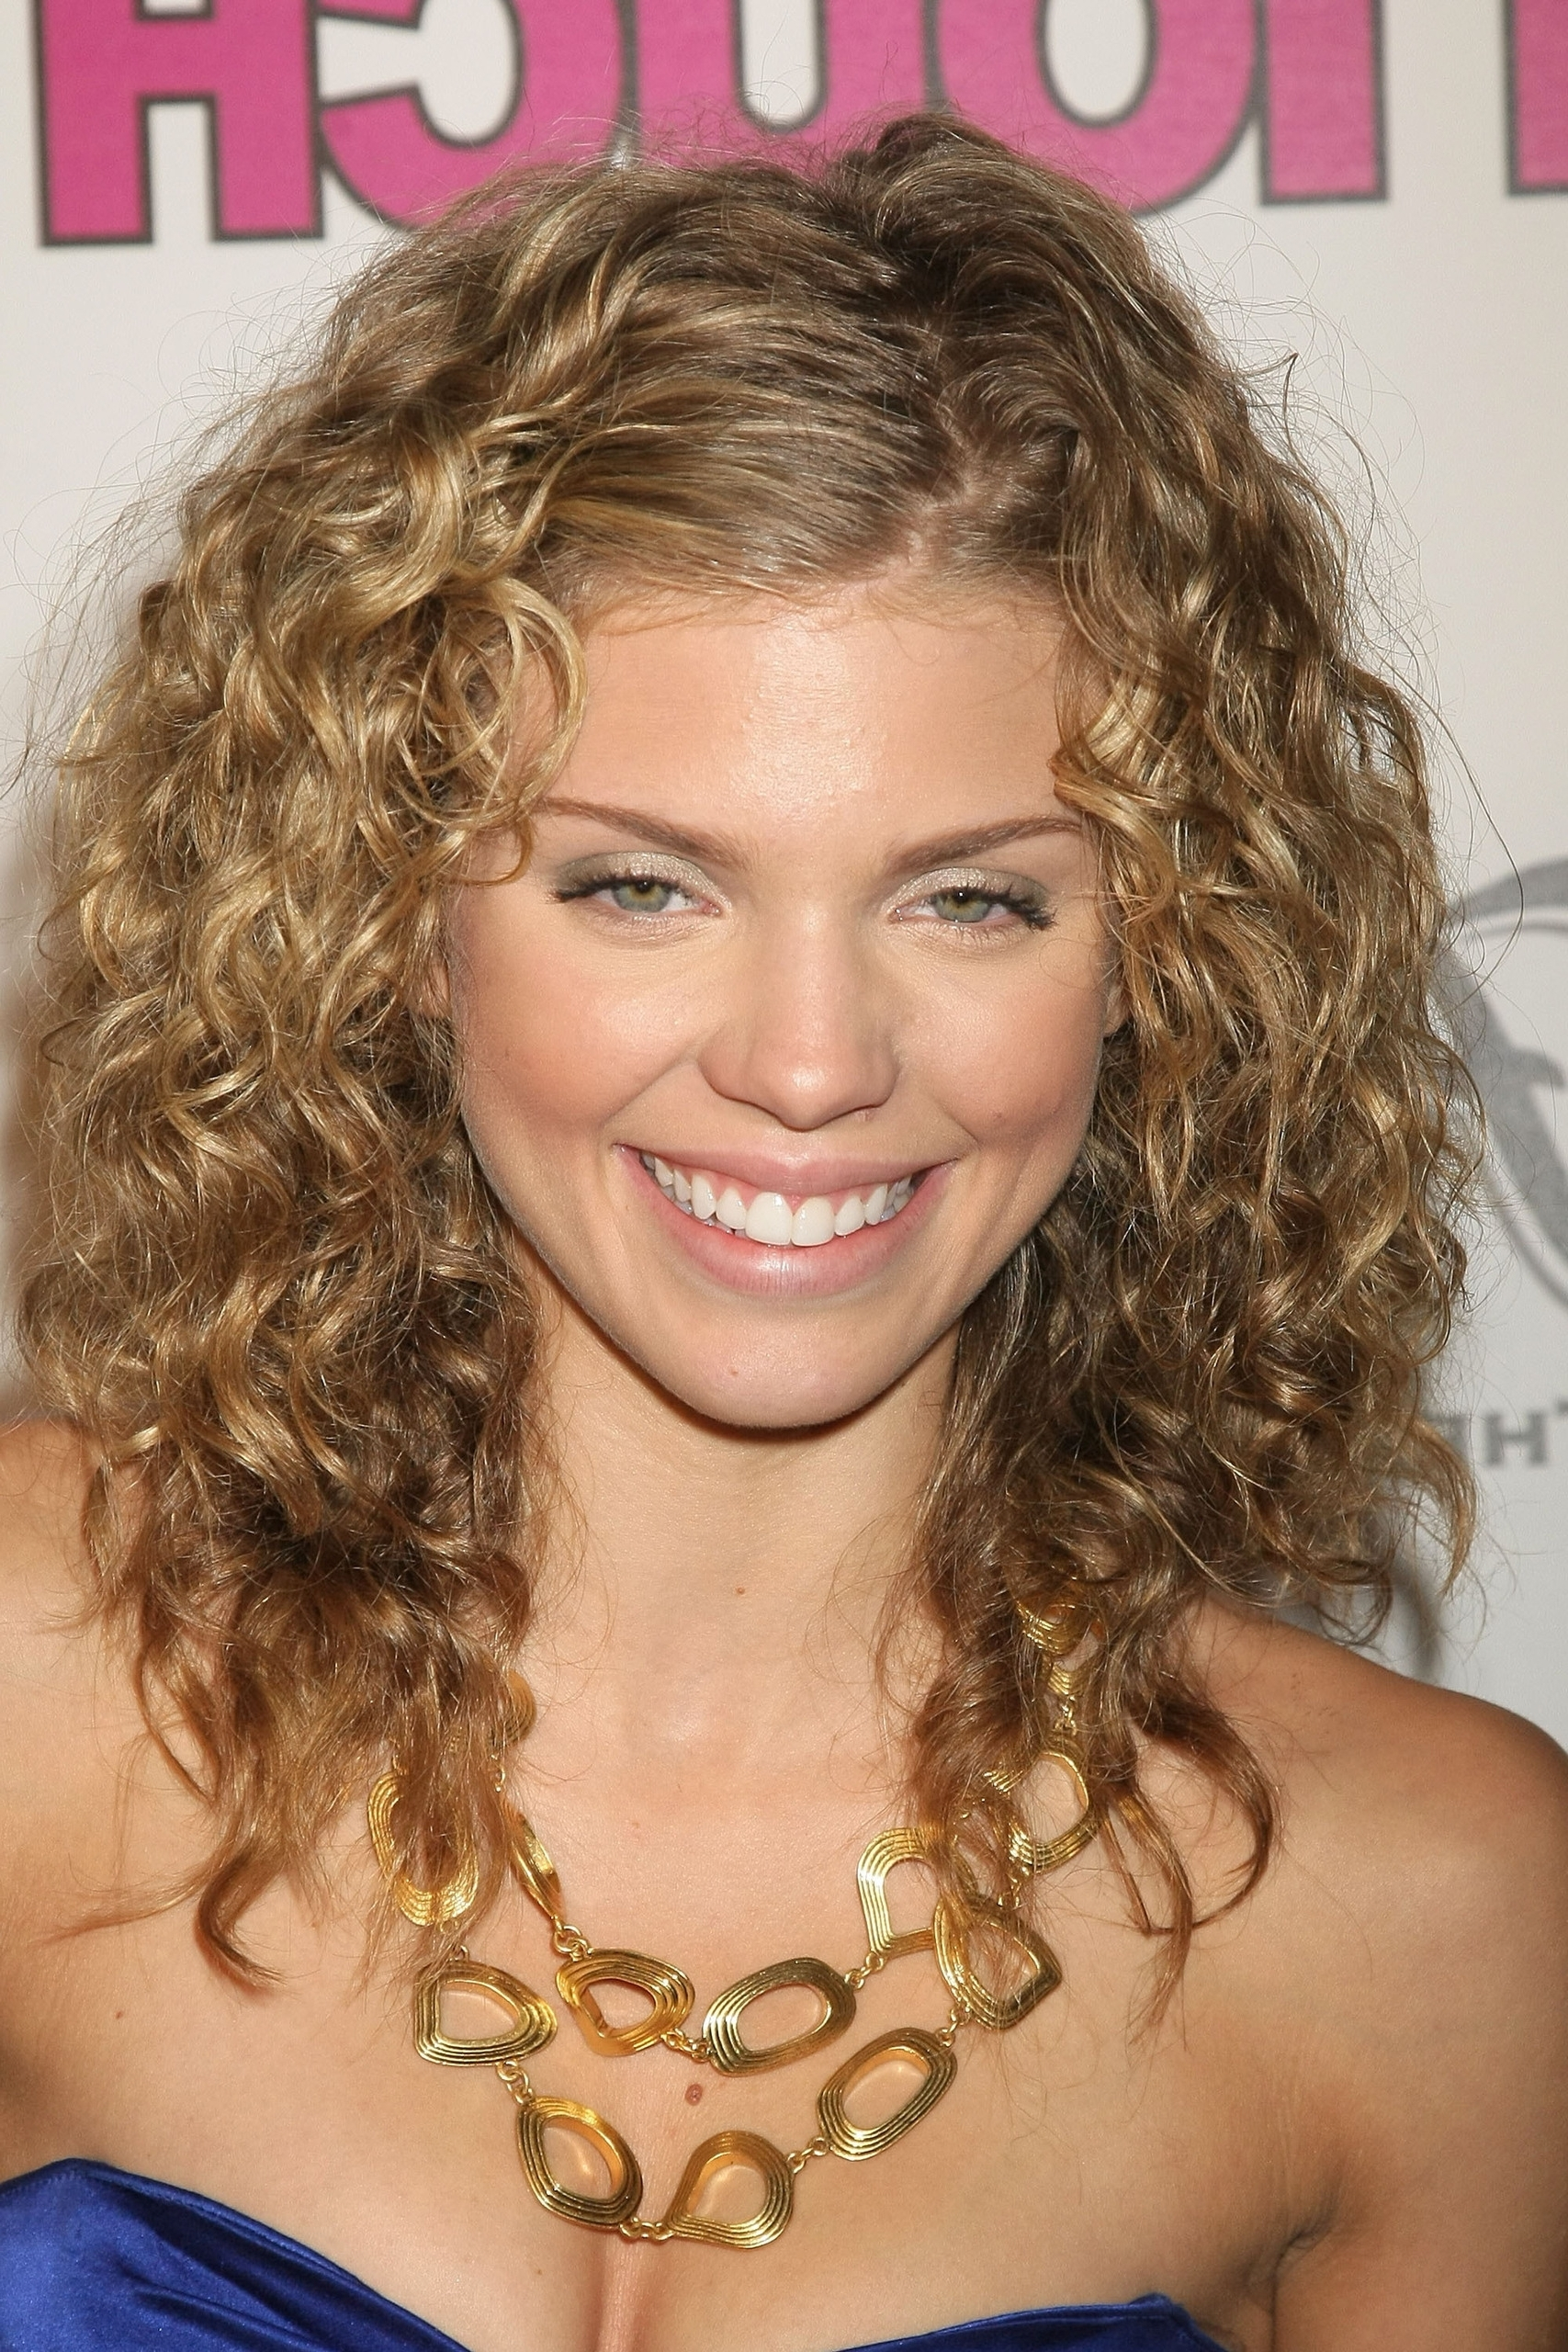 Wedding Hairstyles For Naturally Curly Hair – Hairstyle For Women & Man Regarding Most Current Wedding Hairstyles For Naturally Curly Hair (View 8 of 15)